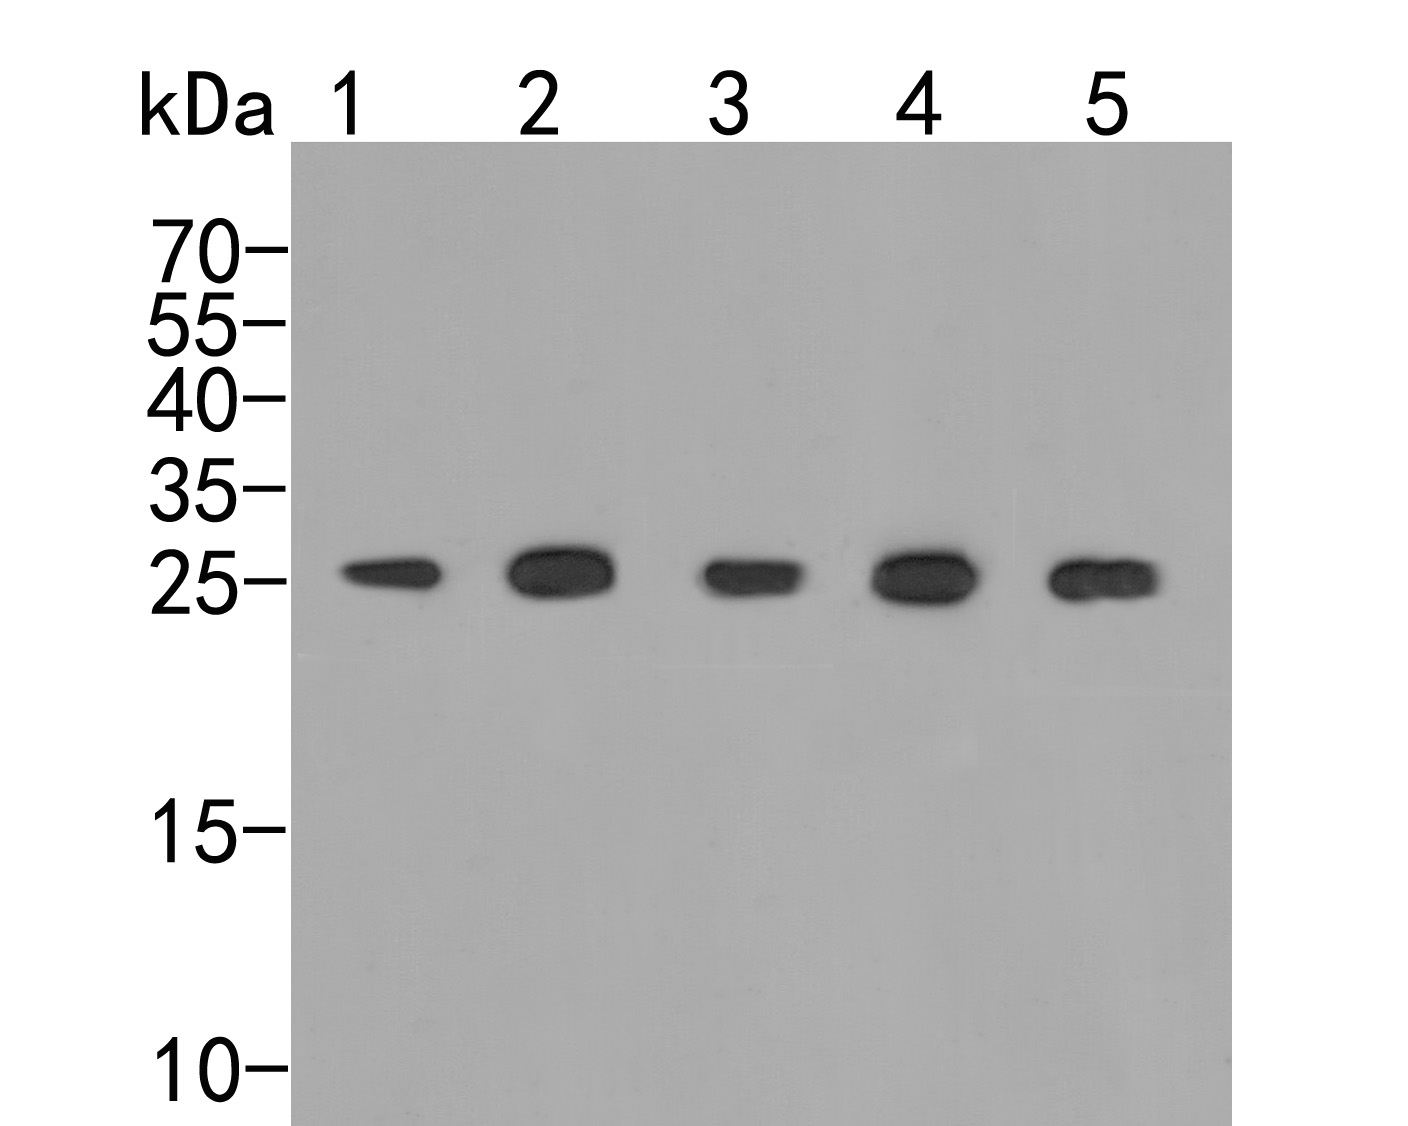 Western blot analysis of PSMA5 on different lysates. Proteins were transferred to a PVDF membrane and blocked with 5% BSA in PBS for 1 hour at room temperature. The primary antibody (ER2001-68, 1/500) was used in 5% BSA at room temperature for 2 hours. Goat Anti-Rabbit IgG - HRP Secondary Antibody (HA1001) at 1:5,000 dilution was used for 1 hour at room temperature.<br />  Positive control: <br />  Lane 1: Hela cell lysate<br />  Lane 2: 293 cell lysate<br />  Lane 3: Mouse cerebellum tissue lysate<br />  Lane 4: Mouse liver tissue lysate<br />  Lane 5: Rat liver tissue lysate